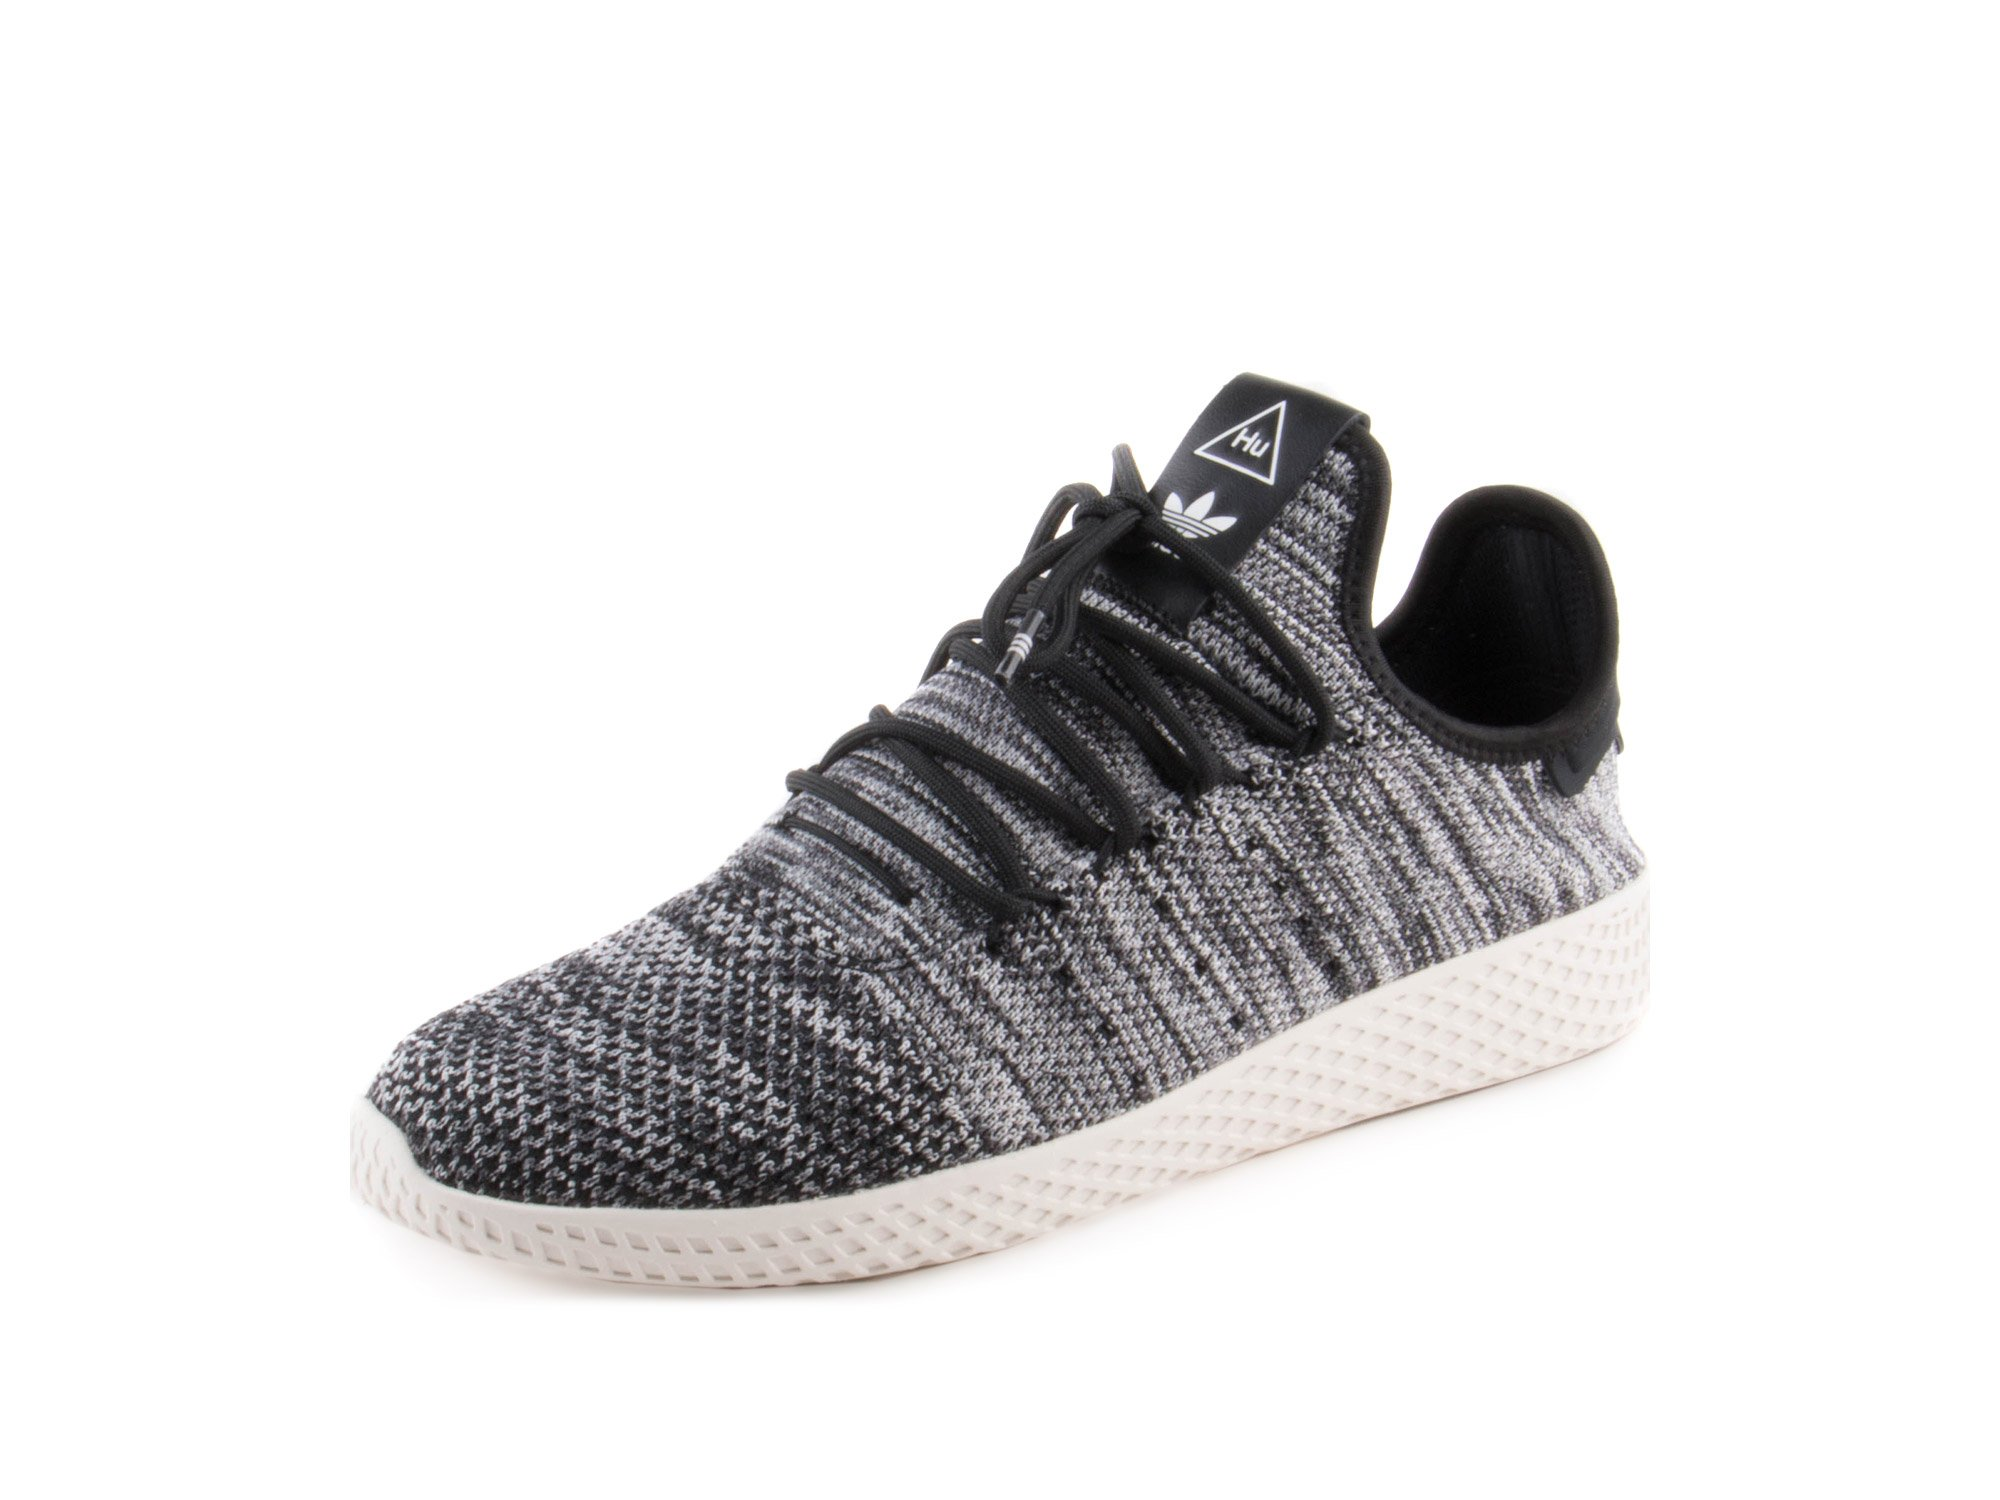 538d6ac45 Galleon - Adidas Mens PW Tennis HU PK Oreo Black White Woven Size 7.5